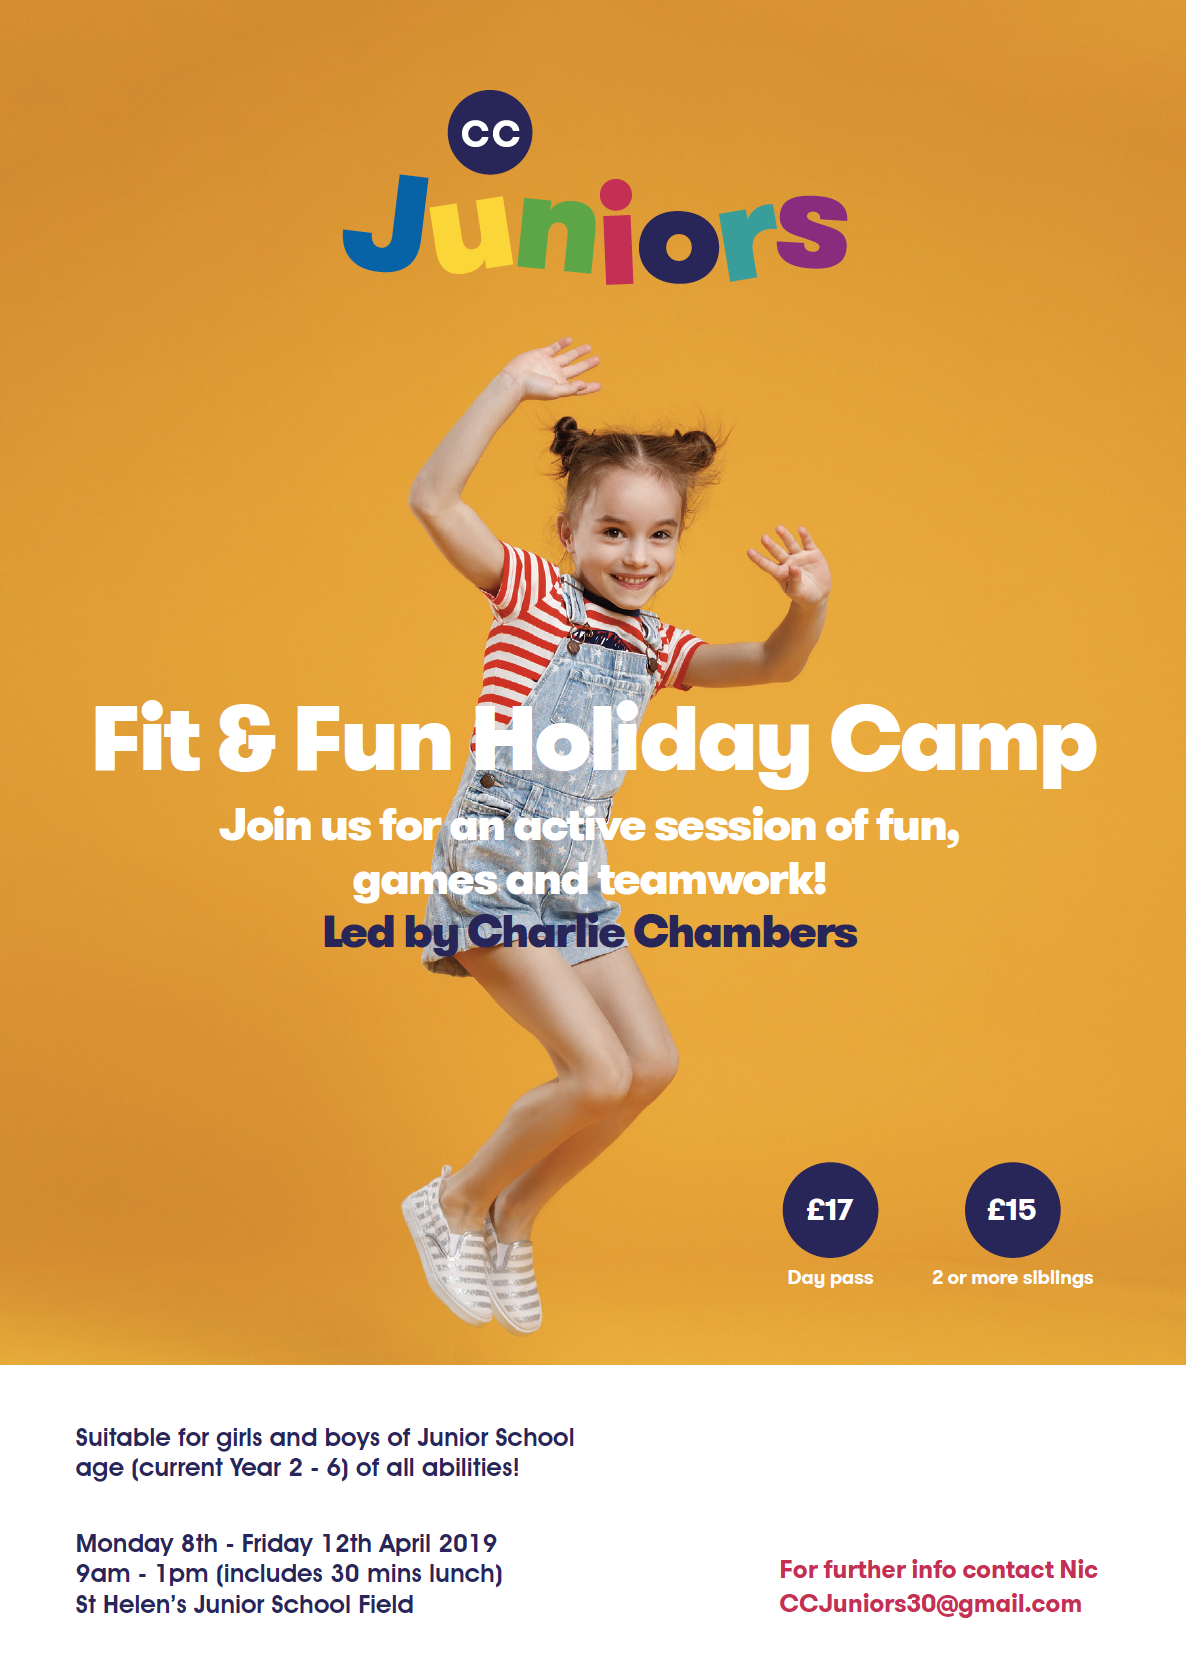 CC JUNIORS FIT & FUN EASTER HOLIDAY CAMP